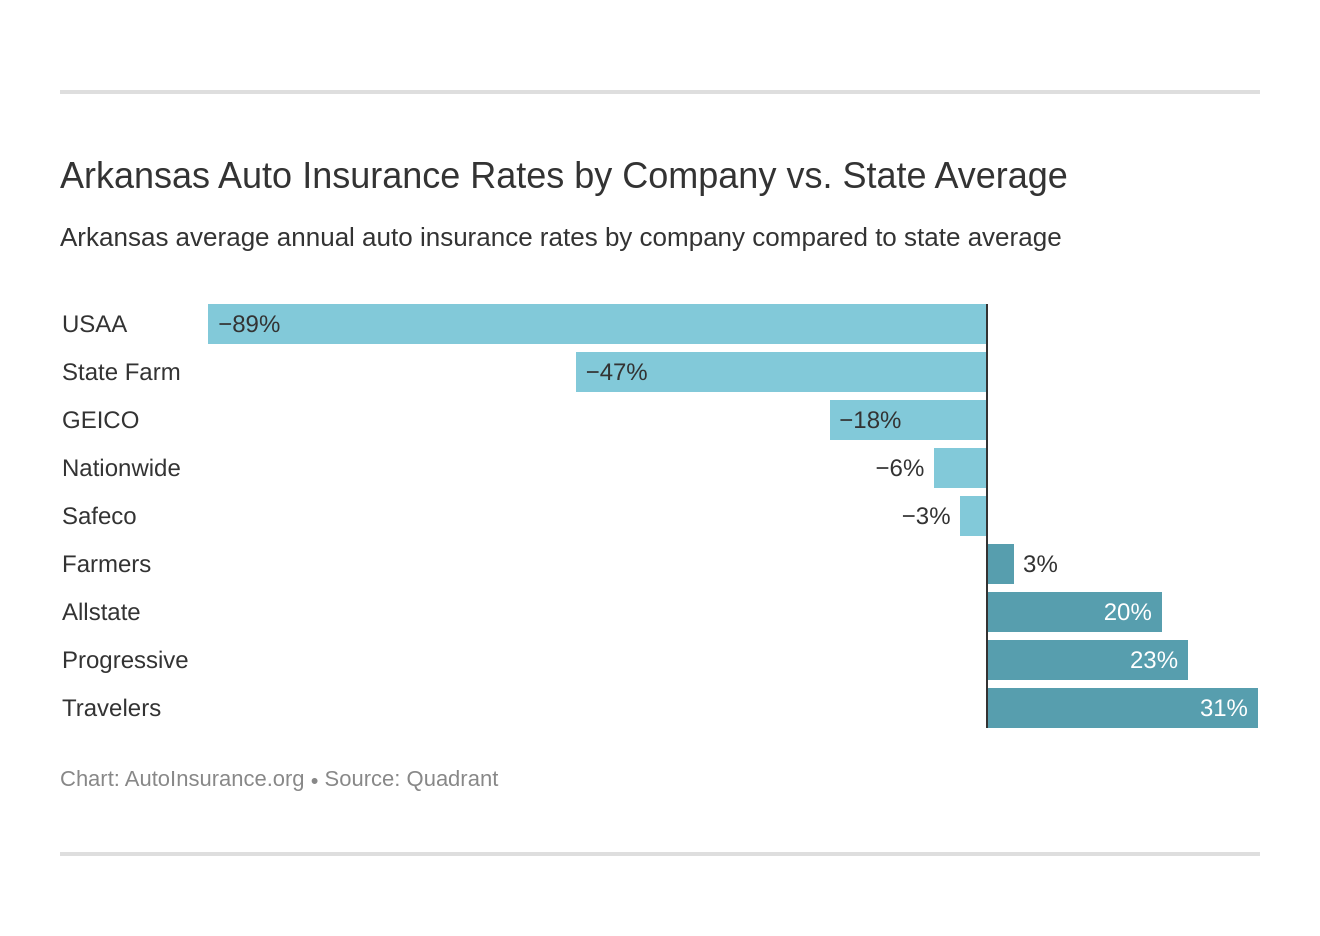 Arkansas Auto Insurance Rates by Company vs. State Average